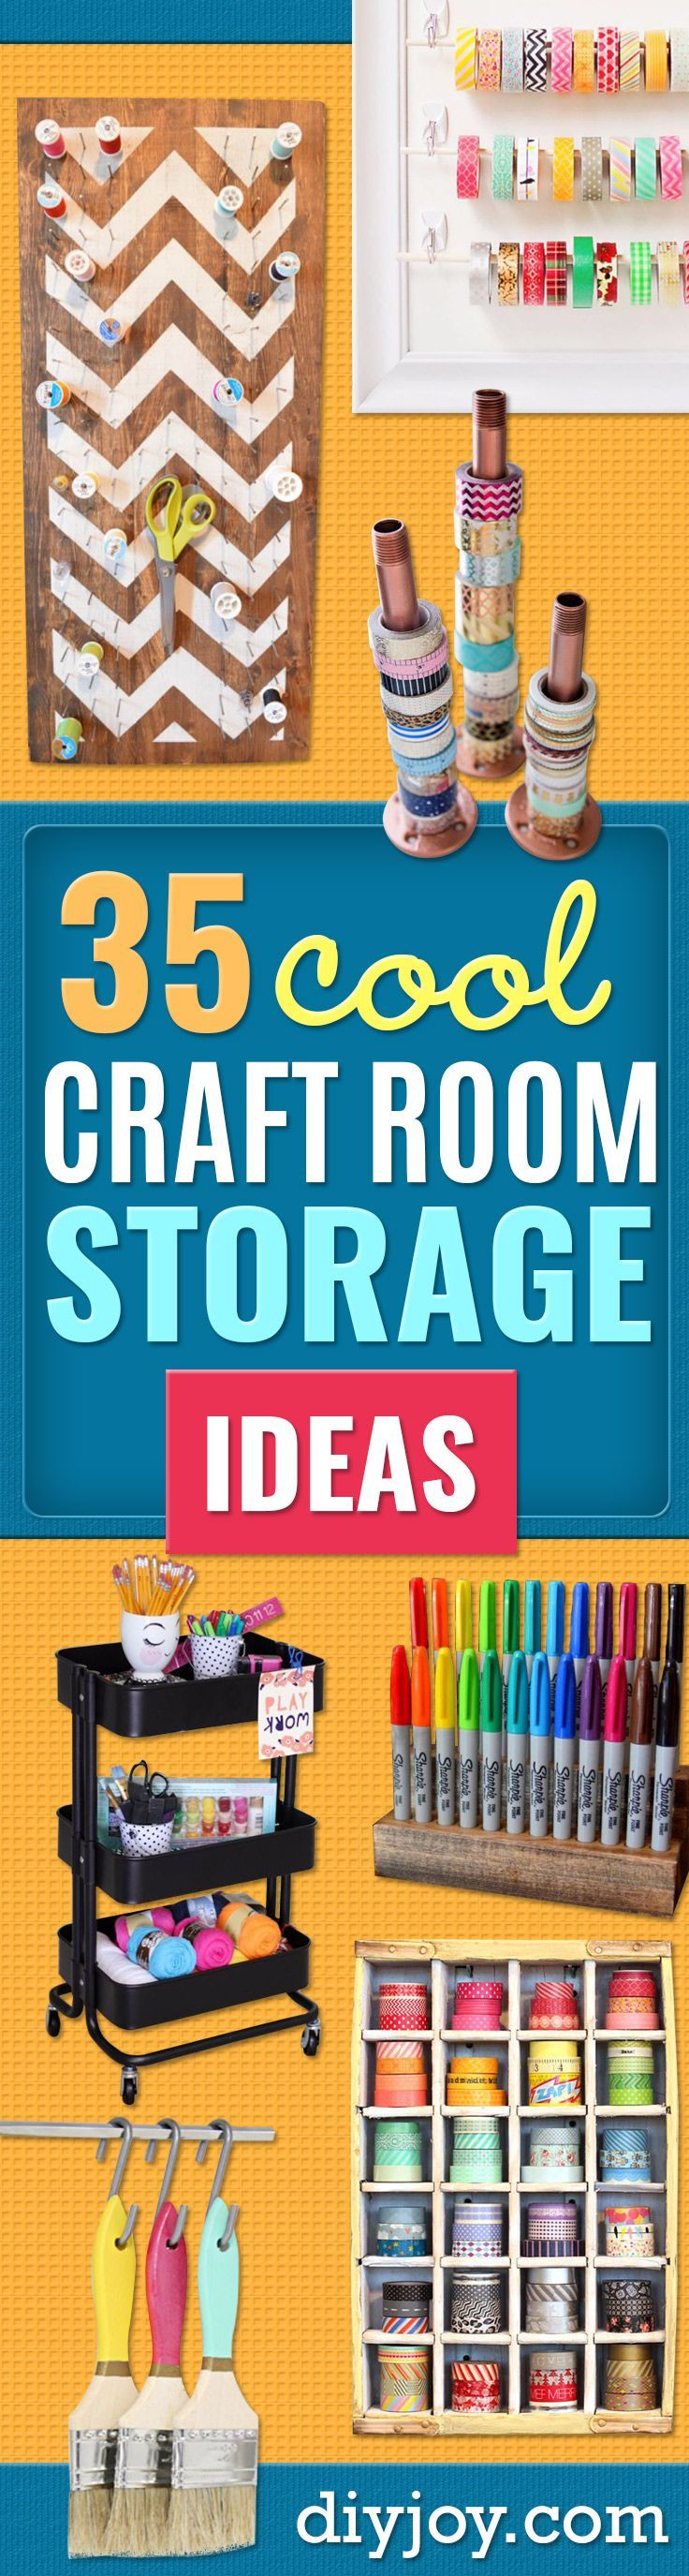 Diy craft room storage ideas and craft room organization projects diy craft room storage ideas and craft room organization projects cool ideas for do it yourself craft storage craft room decor and organizing project solutioingenieria Images